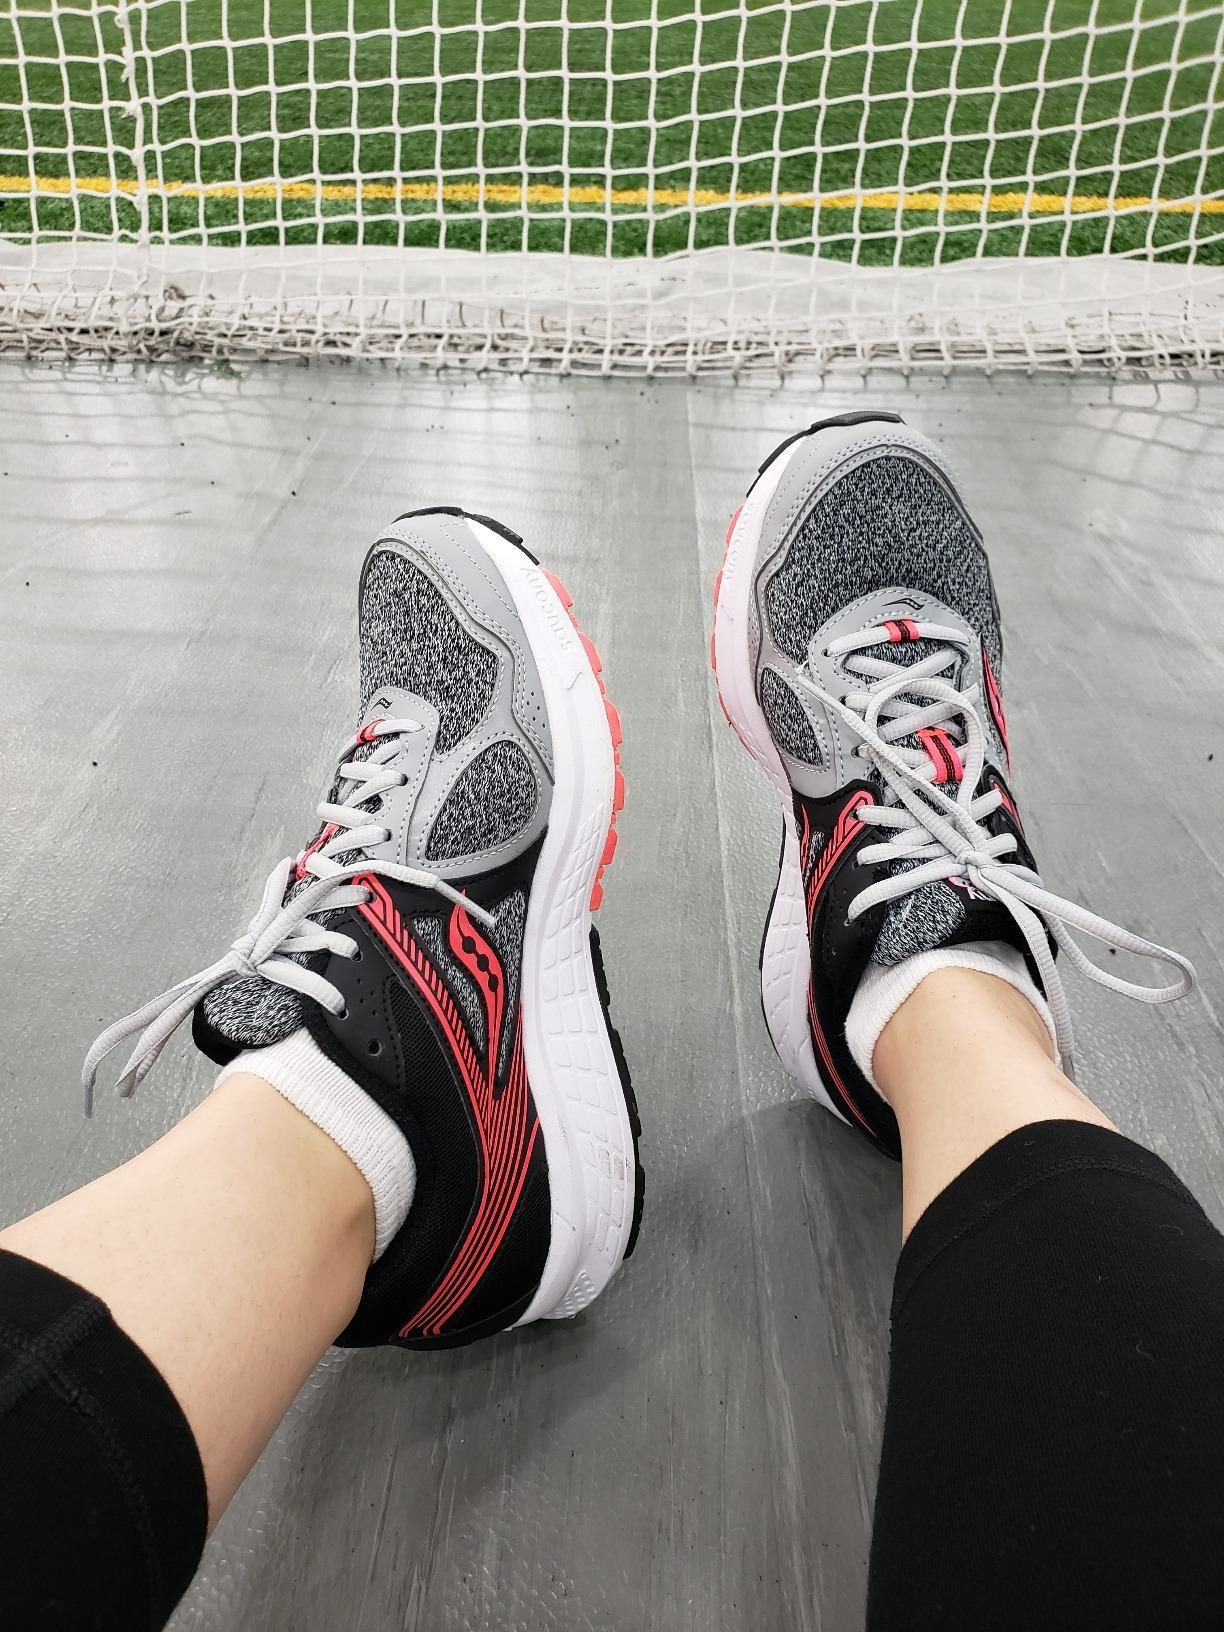 Reviewer wearing Saucony Cohesion 10s